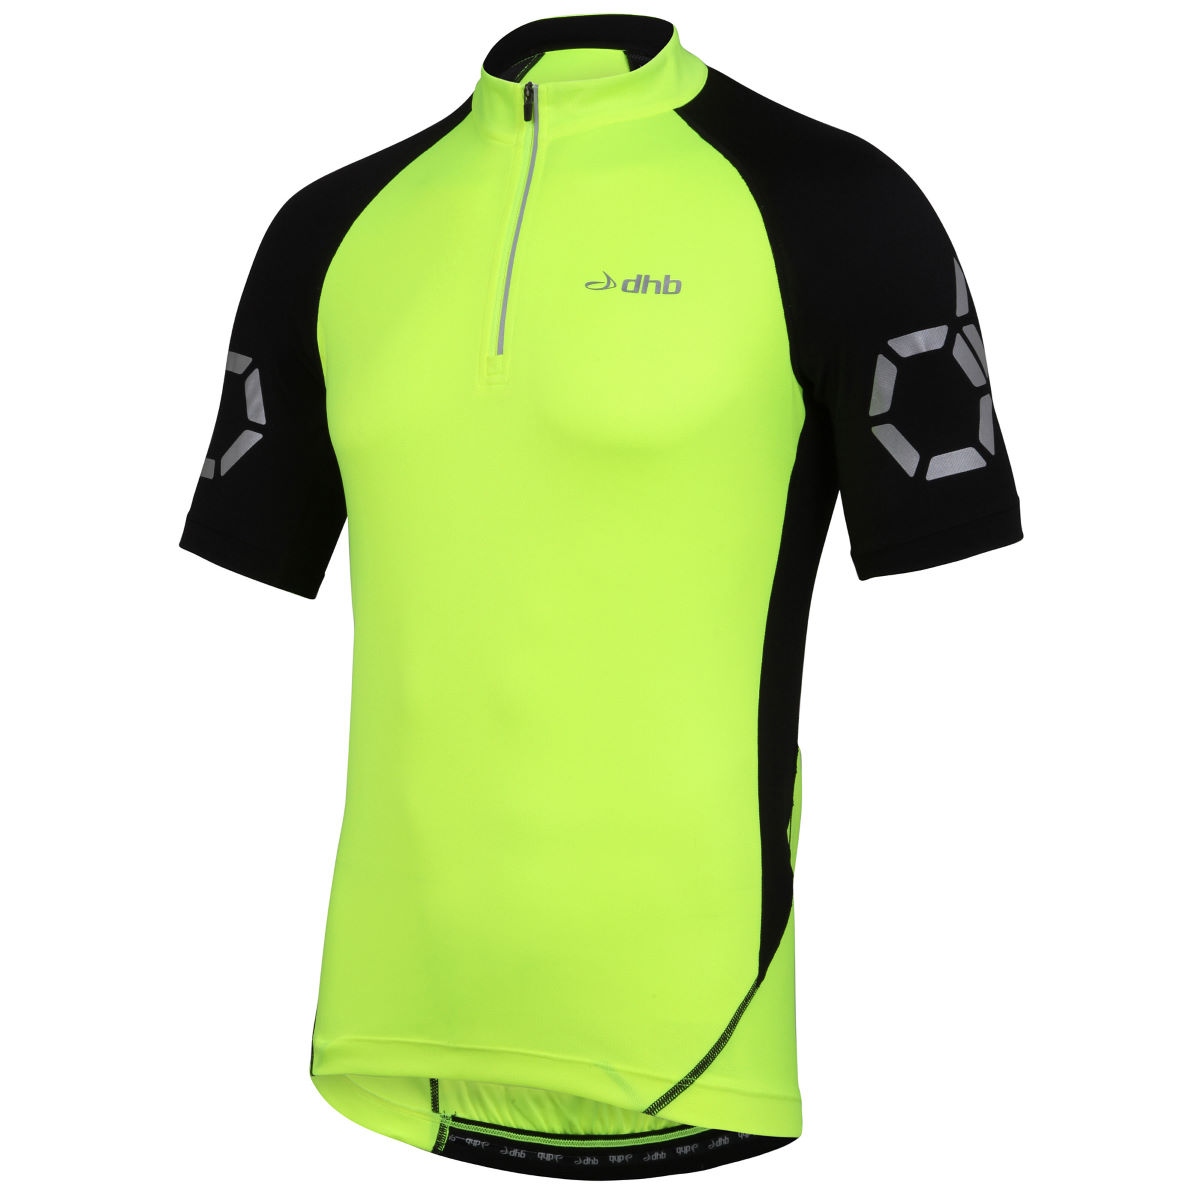 Maillot dhb Flashlight (manches courtes) - XS Jaune Maillots